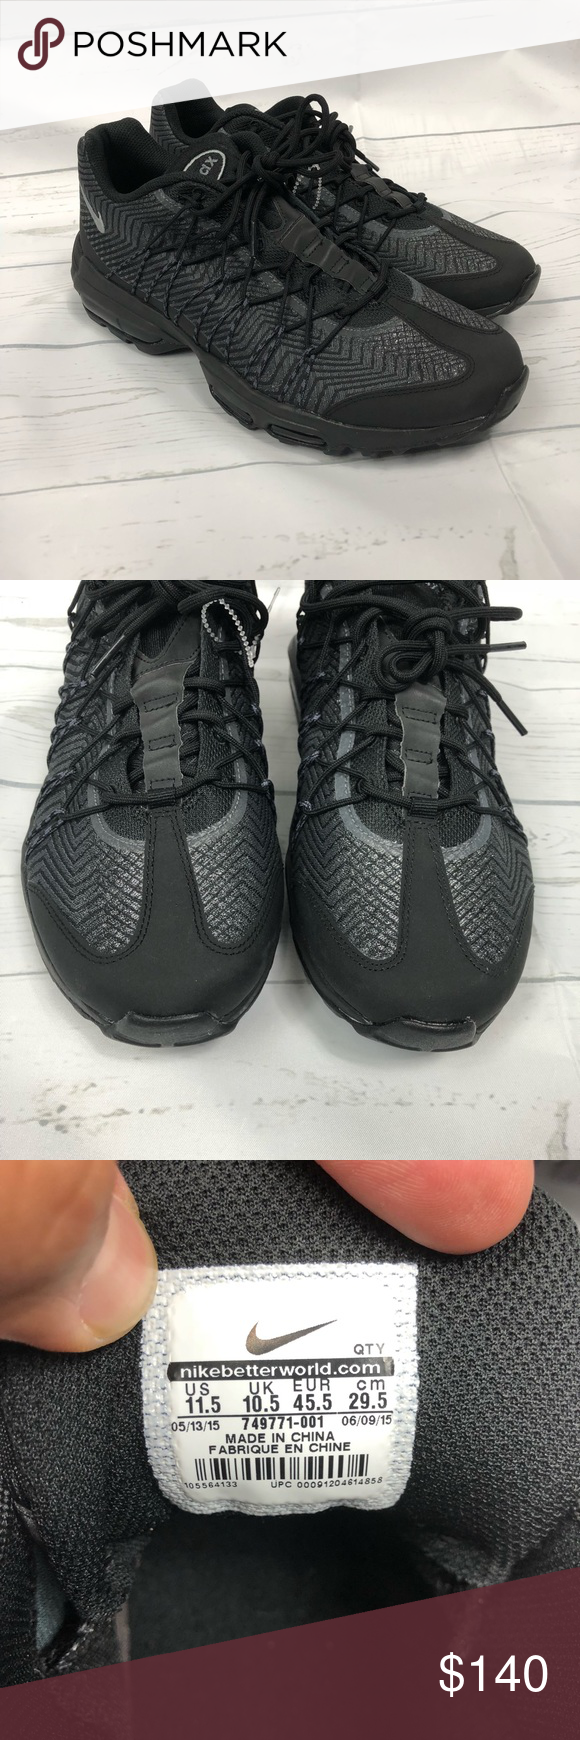 8ba587ca117c Mens Sz 11.5 Nike Air Max 95 Ultra JCRD 749771-001 NEW Mens Sz 11.5 Nike  Air Max 95 Ultra JCRD Black Silver Dark Grey 749771-001 No box New